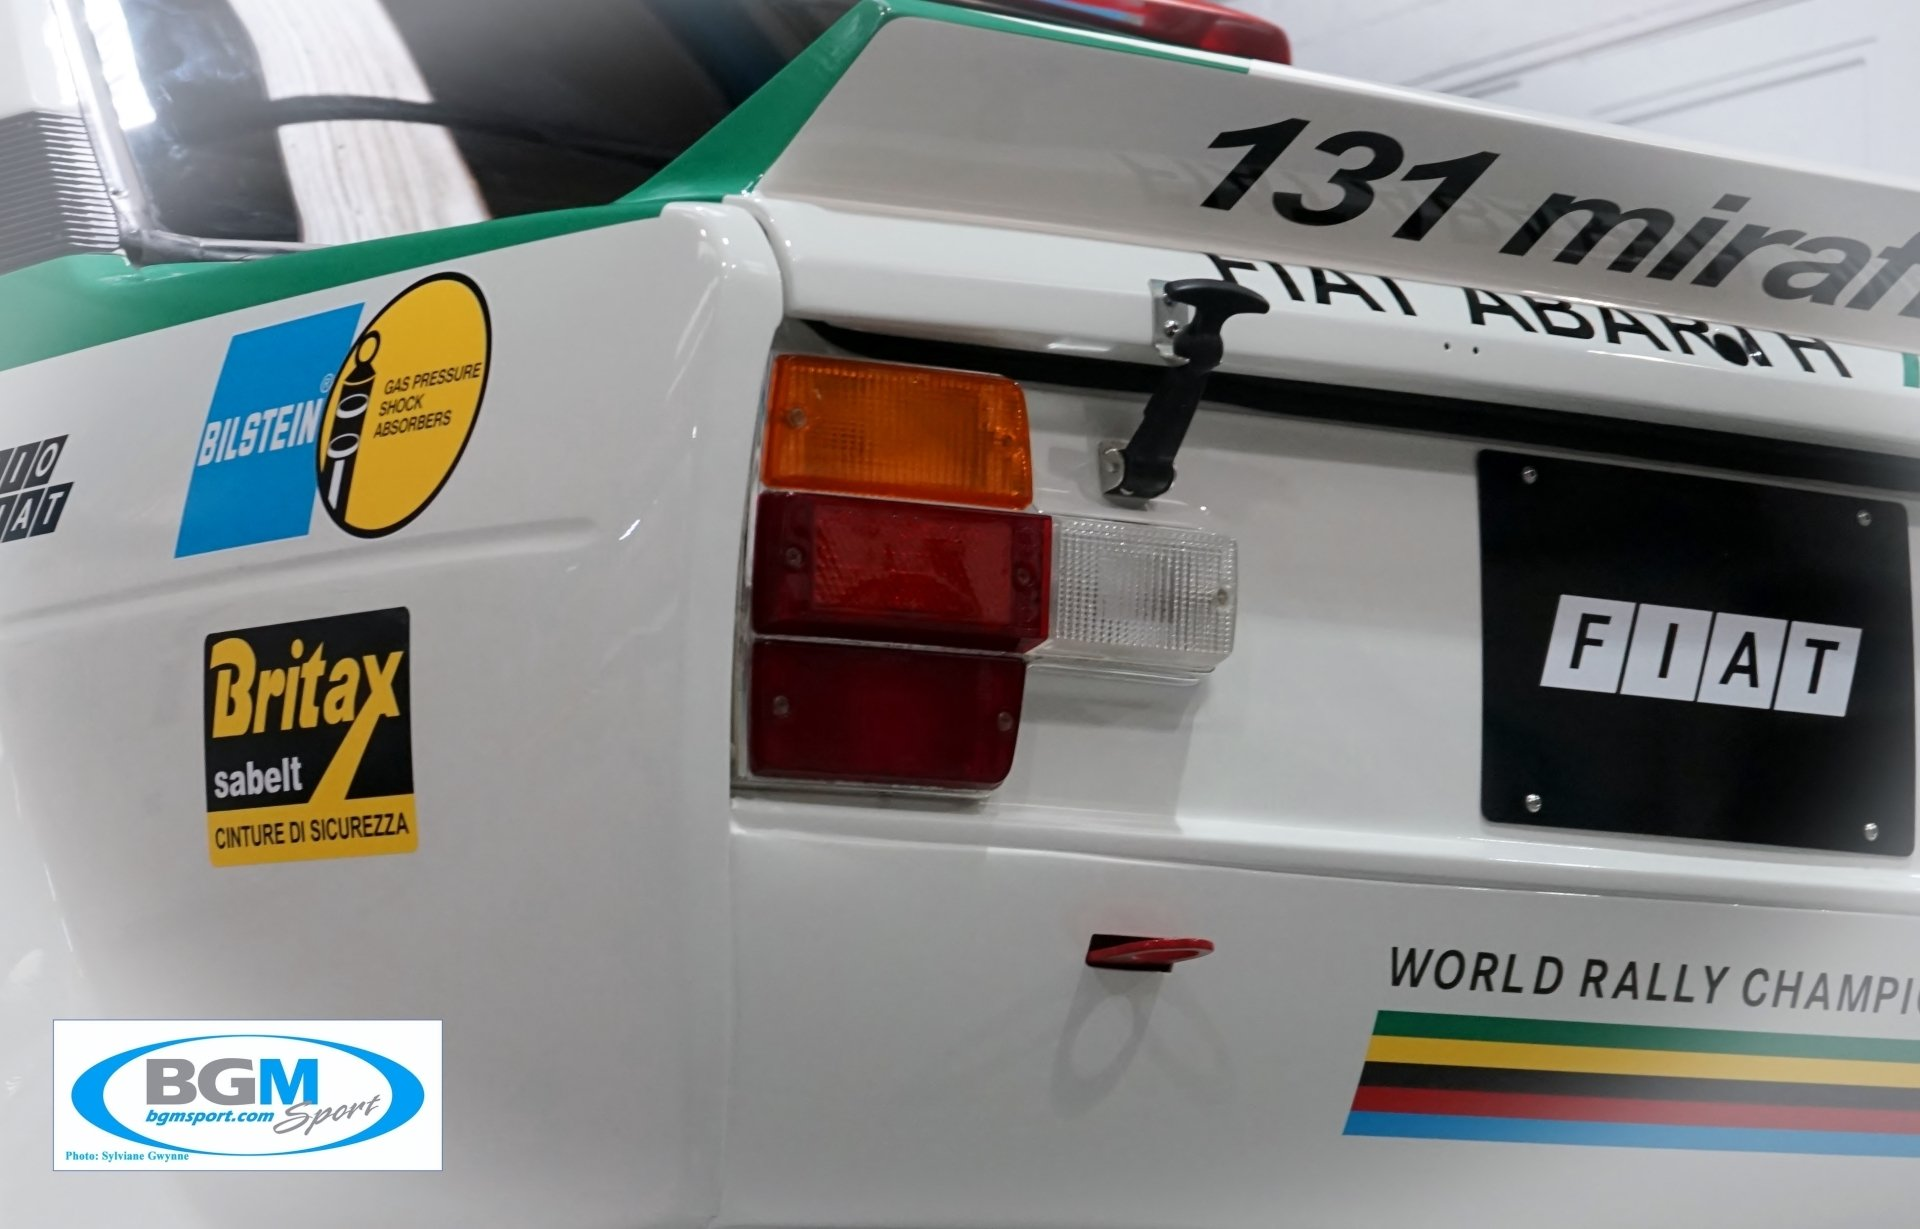 fiat-131-abarth-grp-4-rally-car-43